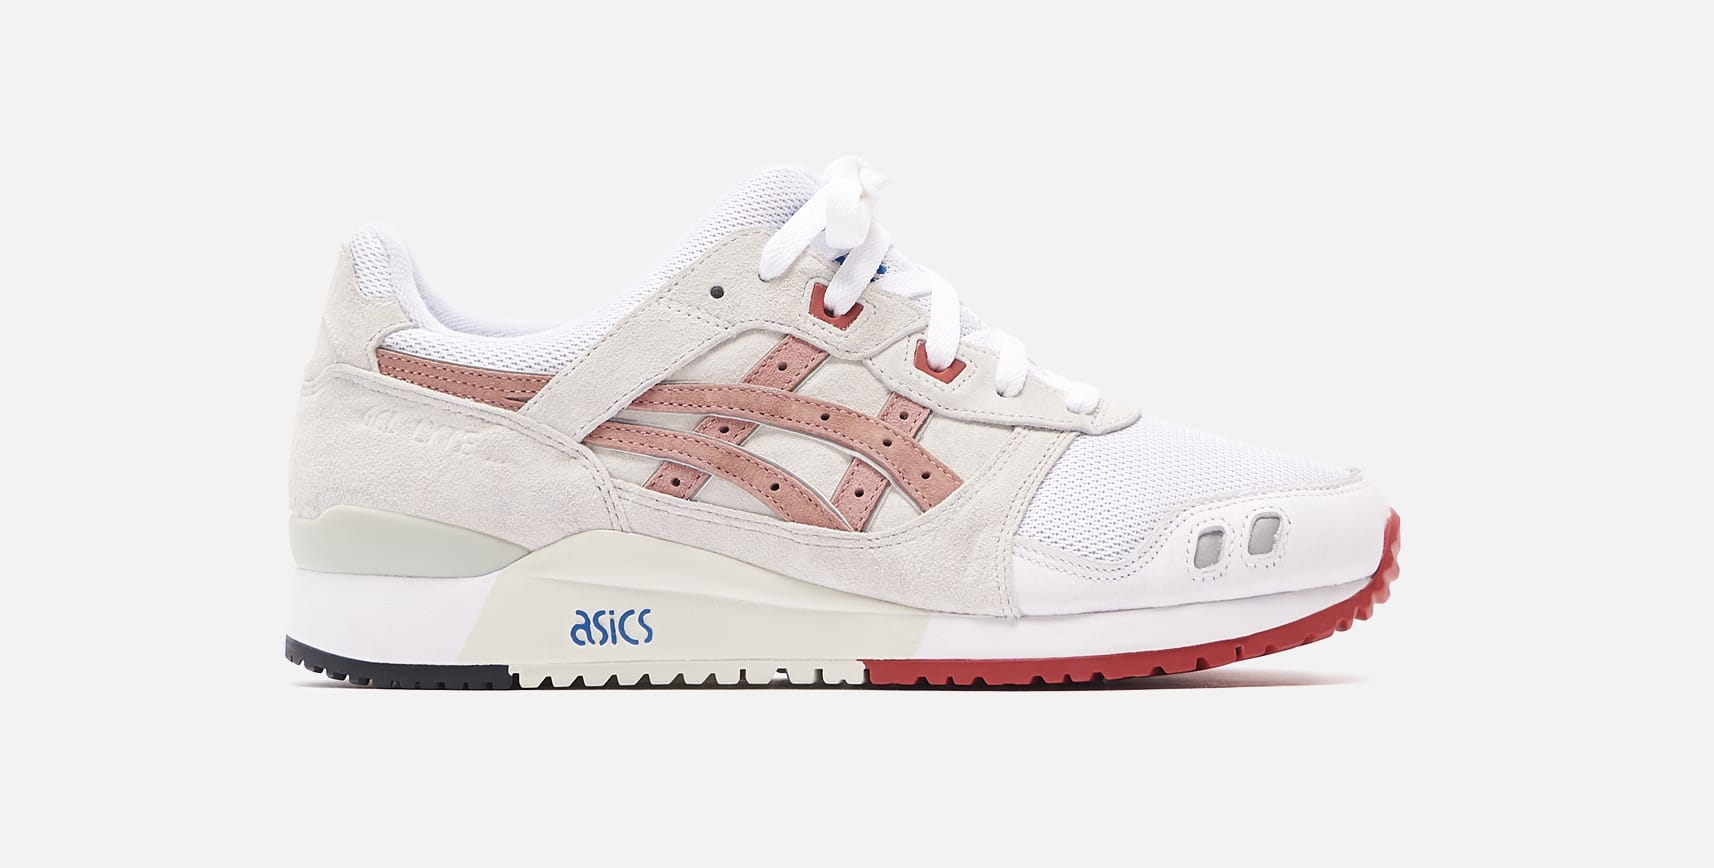 Ronnie Fieg x Asics Gel-Lyte 3 'Yoshino Rose' Lateral